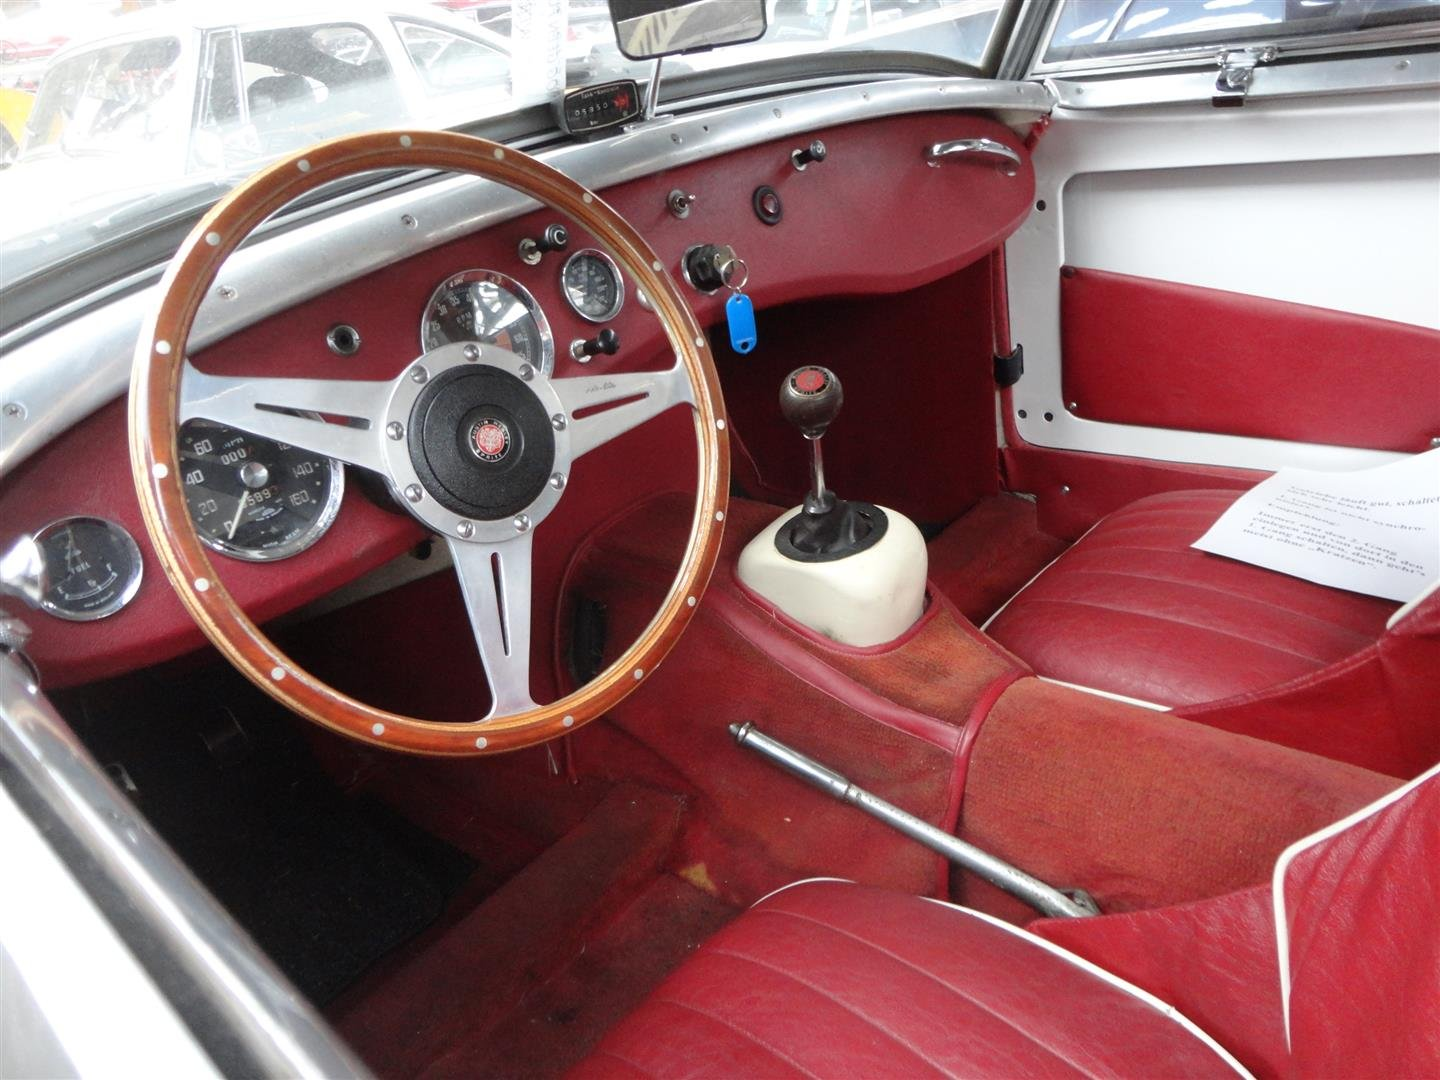 1959 Austin Healey Bugeye Sprite '59 For Sale (picture 3 of 6)